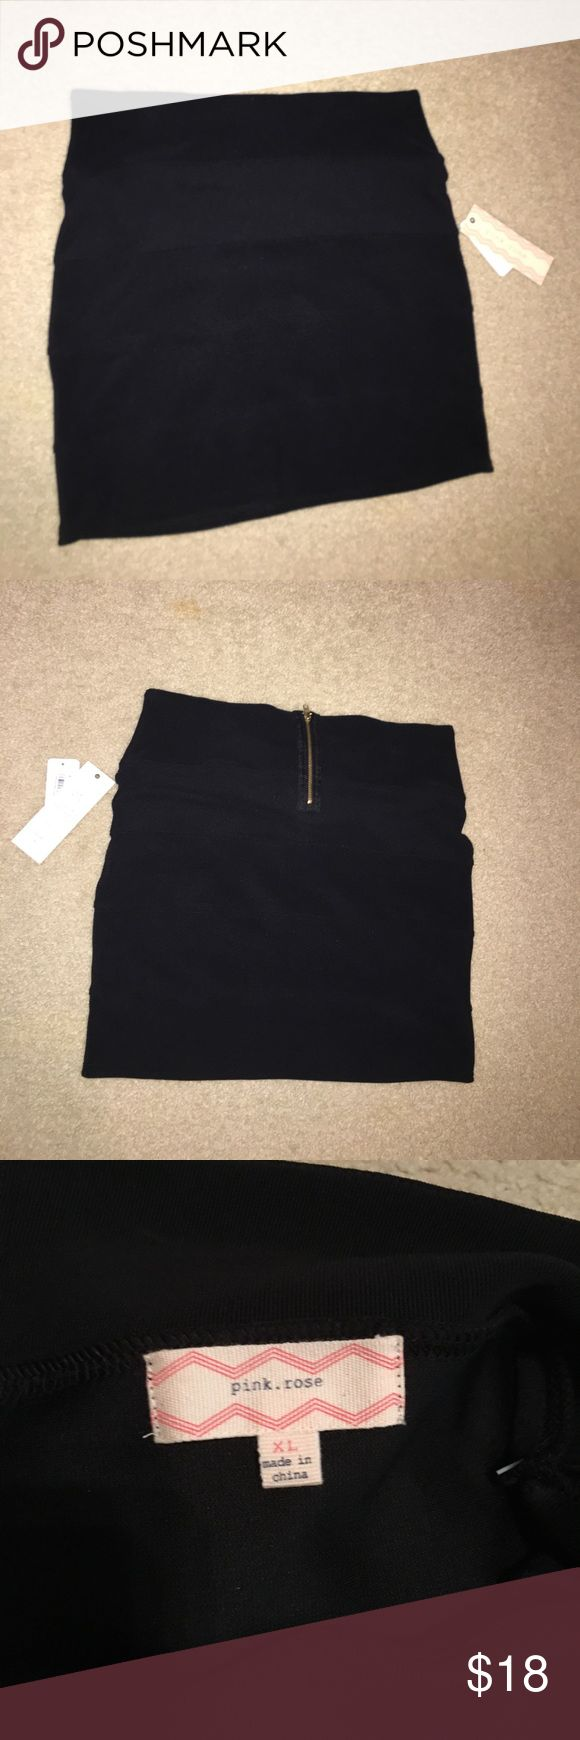 Black pencil skirt Size Xlarge, black pencil skirt from Macy's teen vogue collection! New with tags! Never worn! Pink Rose Skirts Pencil